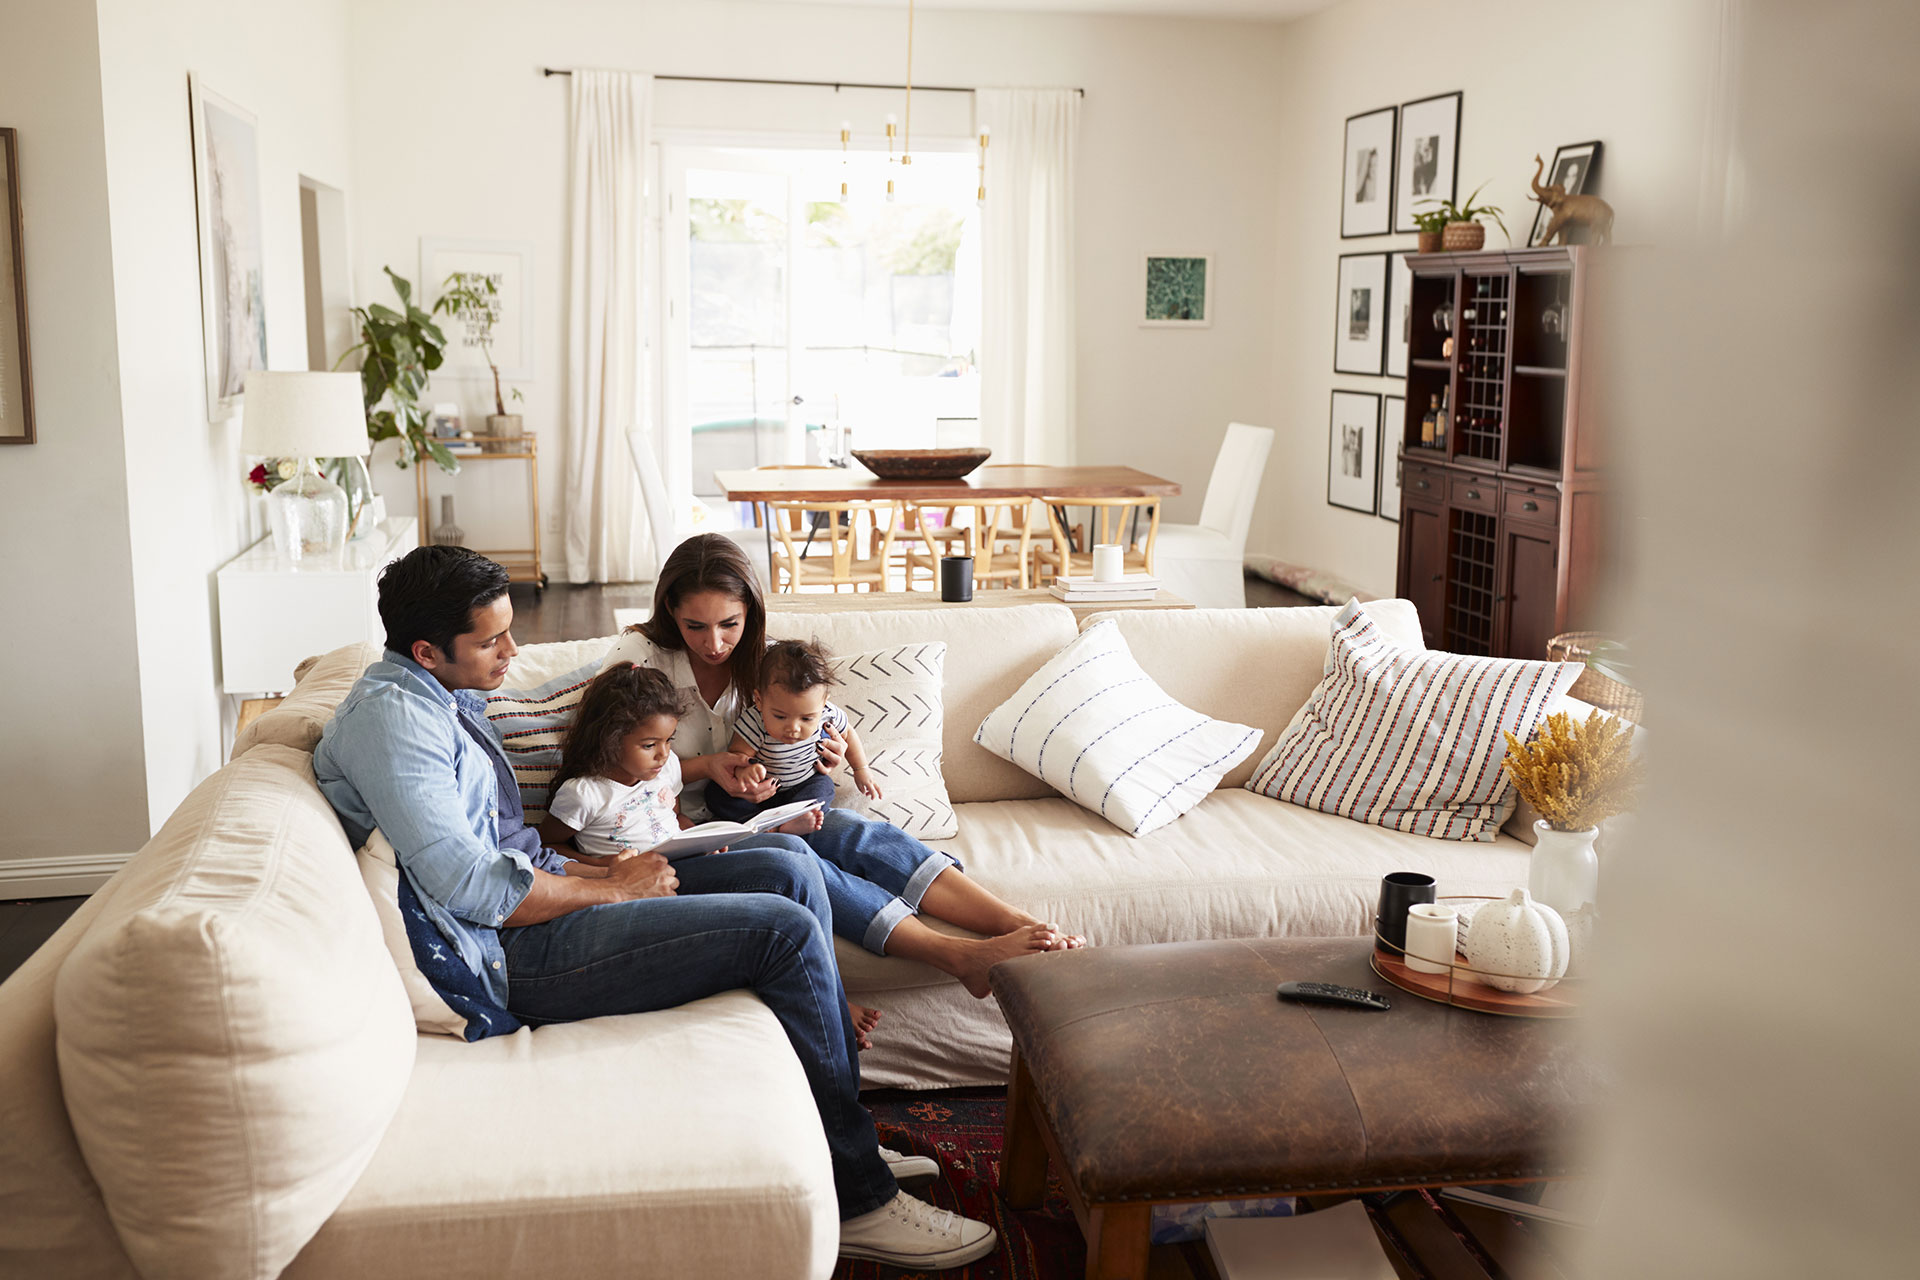 family reading a book on couch